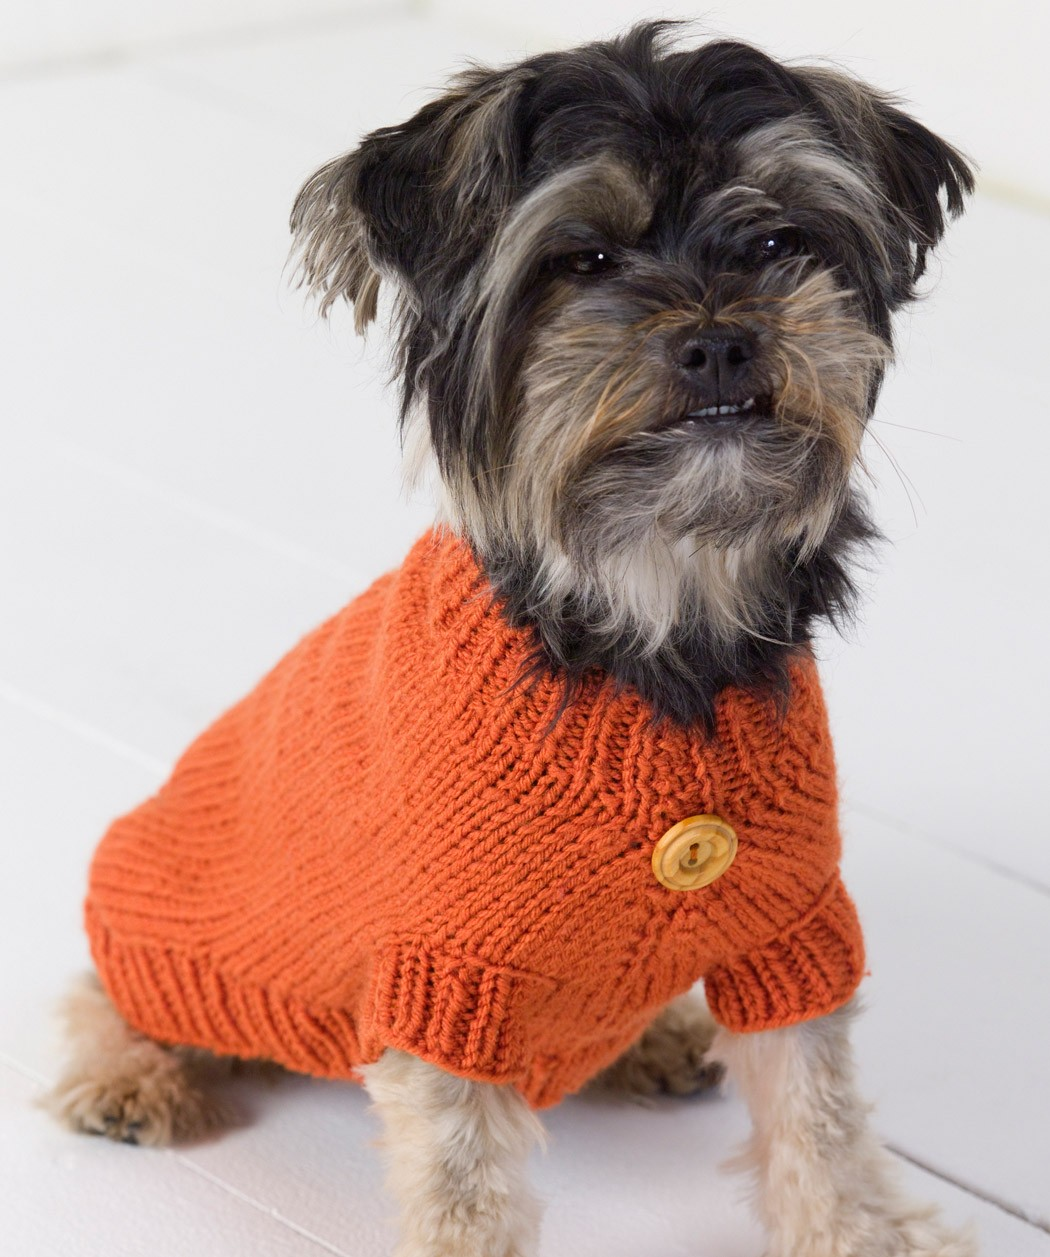 Free Knit Patterns For Dogs : Dog Sweater Knitting Pattern Cute Small Dog Sweater Dog Breeds Picture